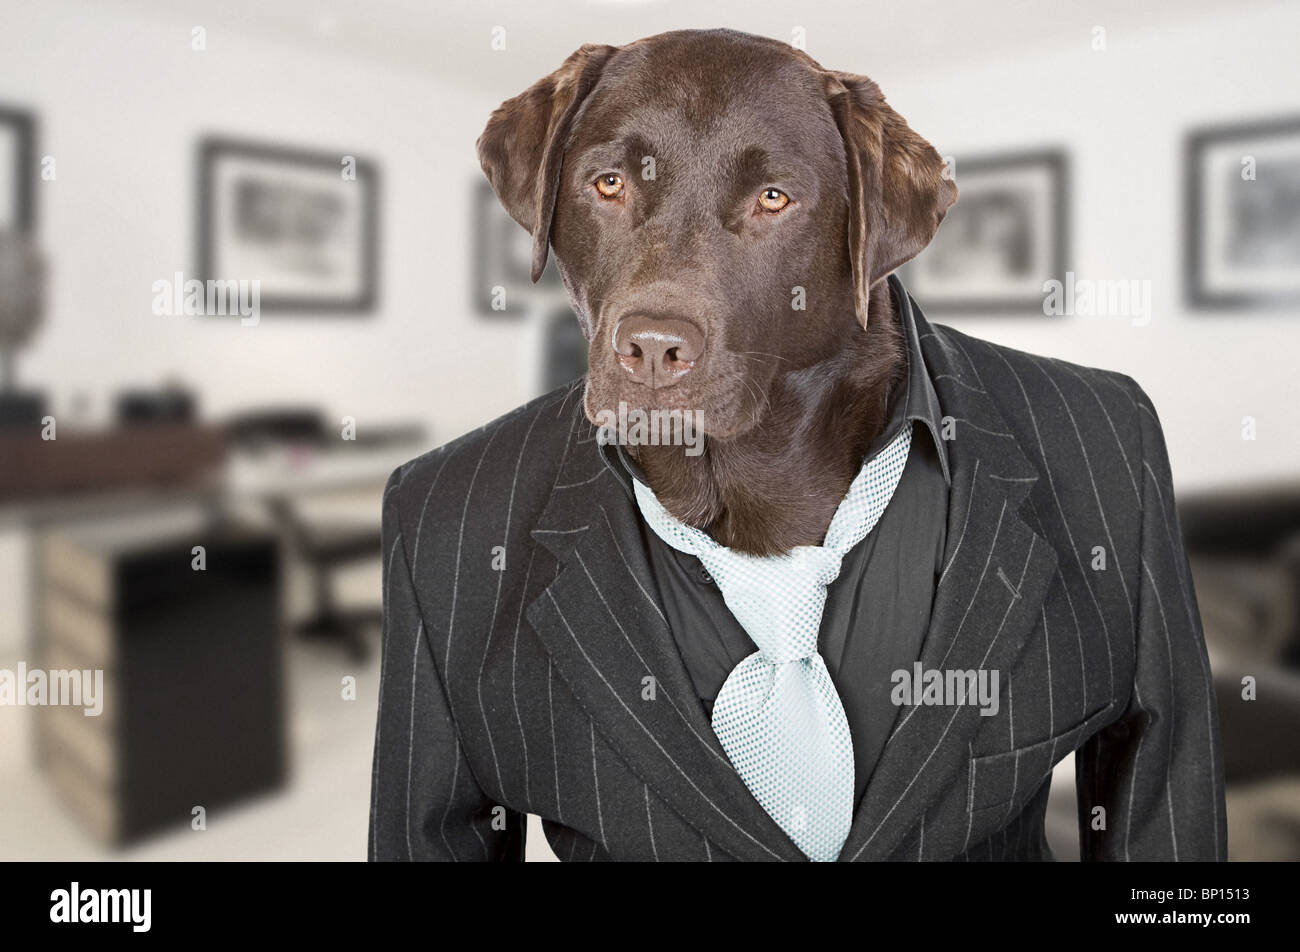 Shot of a Chocolate Labrador in Pin Stripe Suit against Office Backdrop - Stock Image